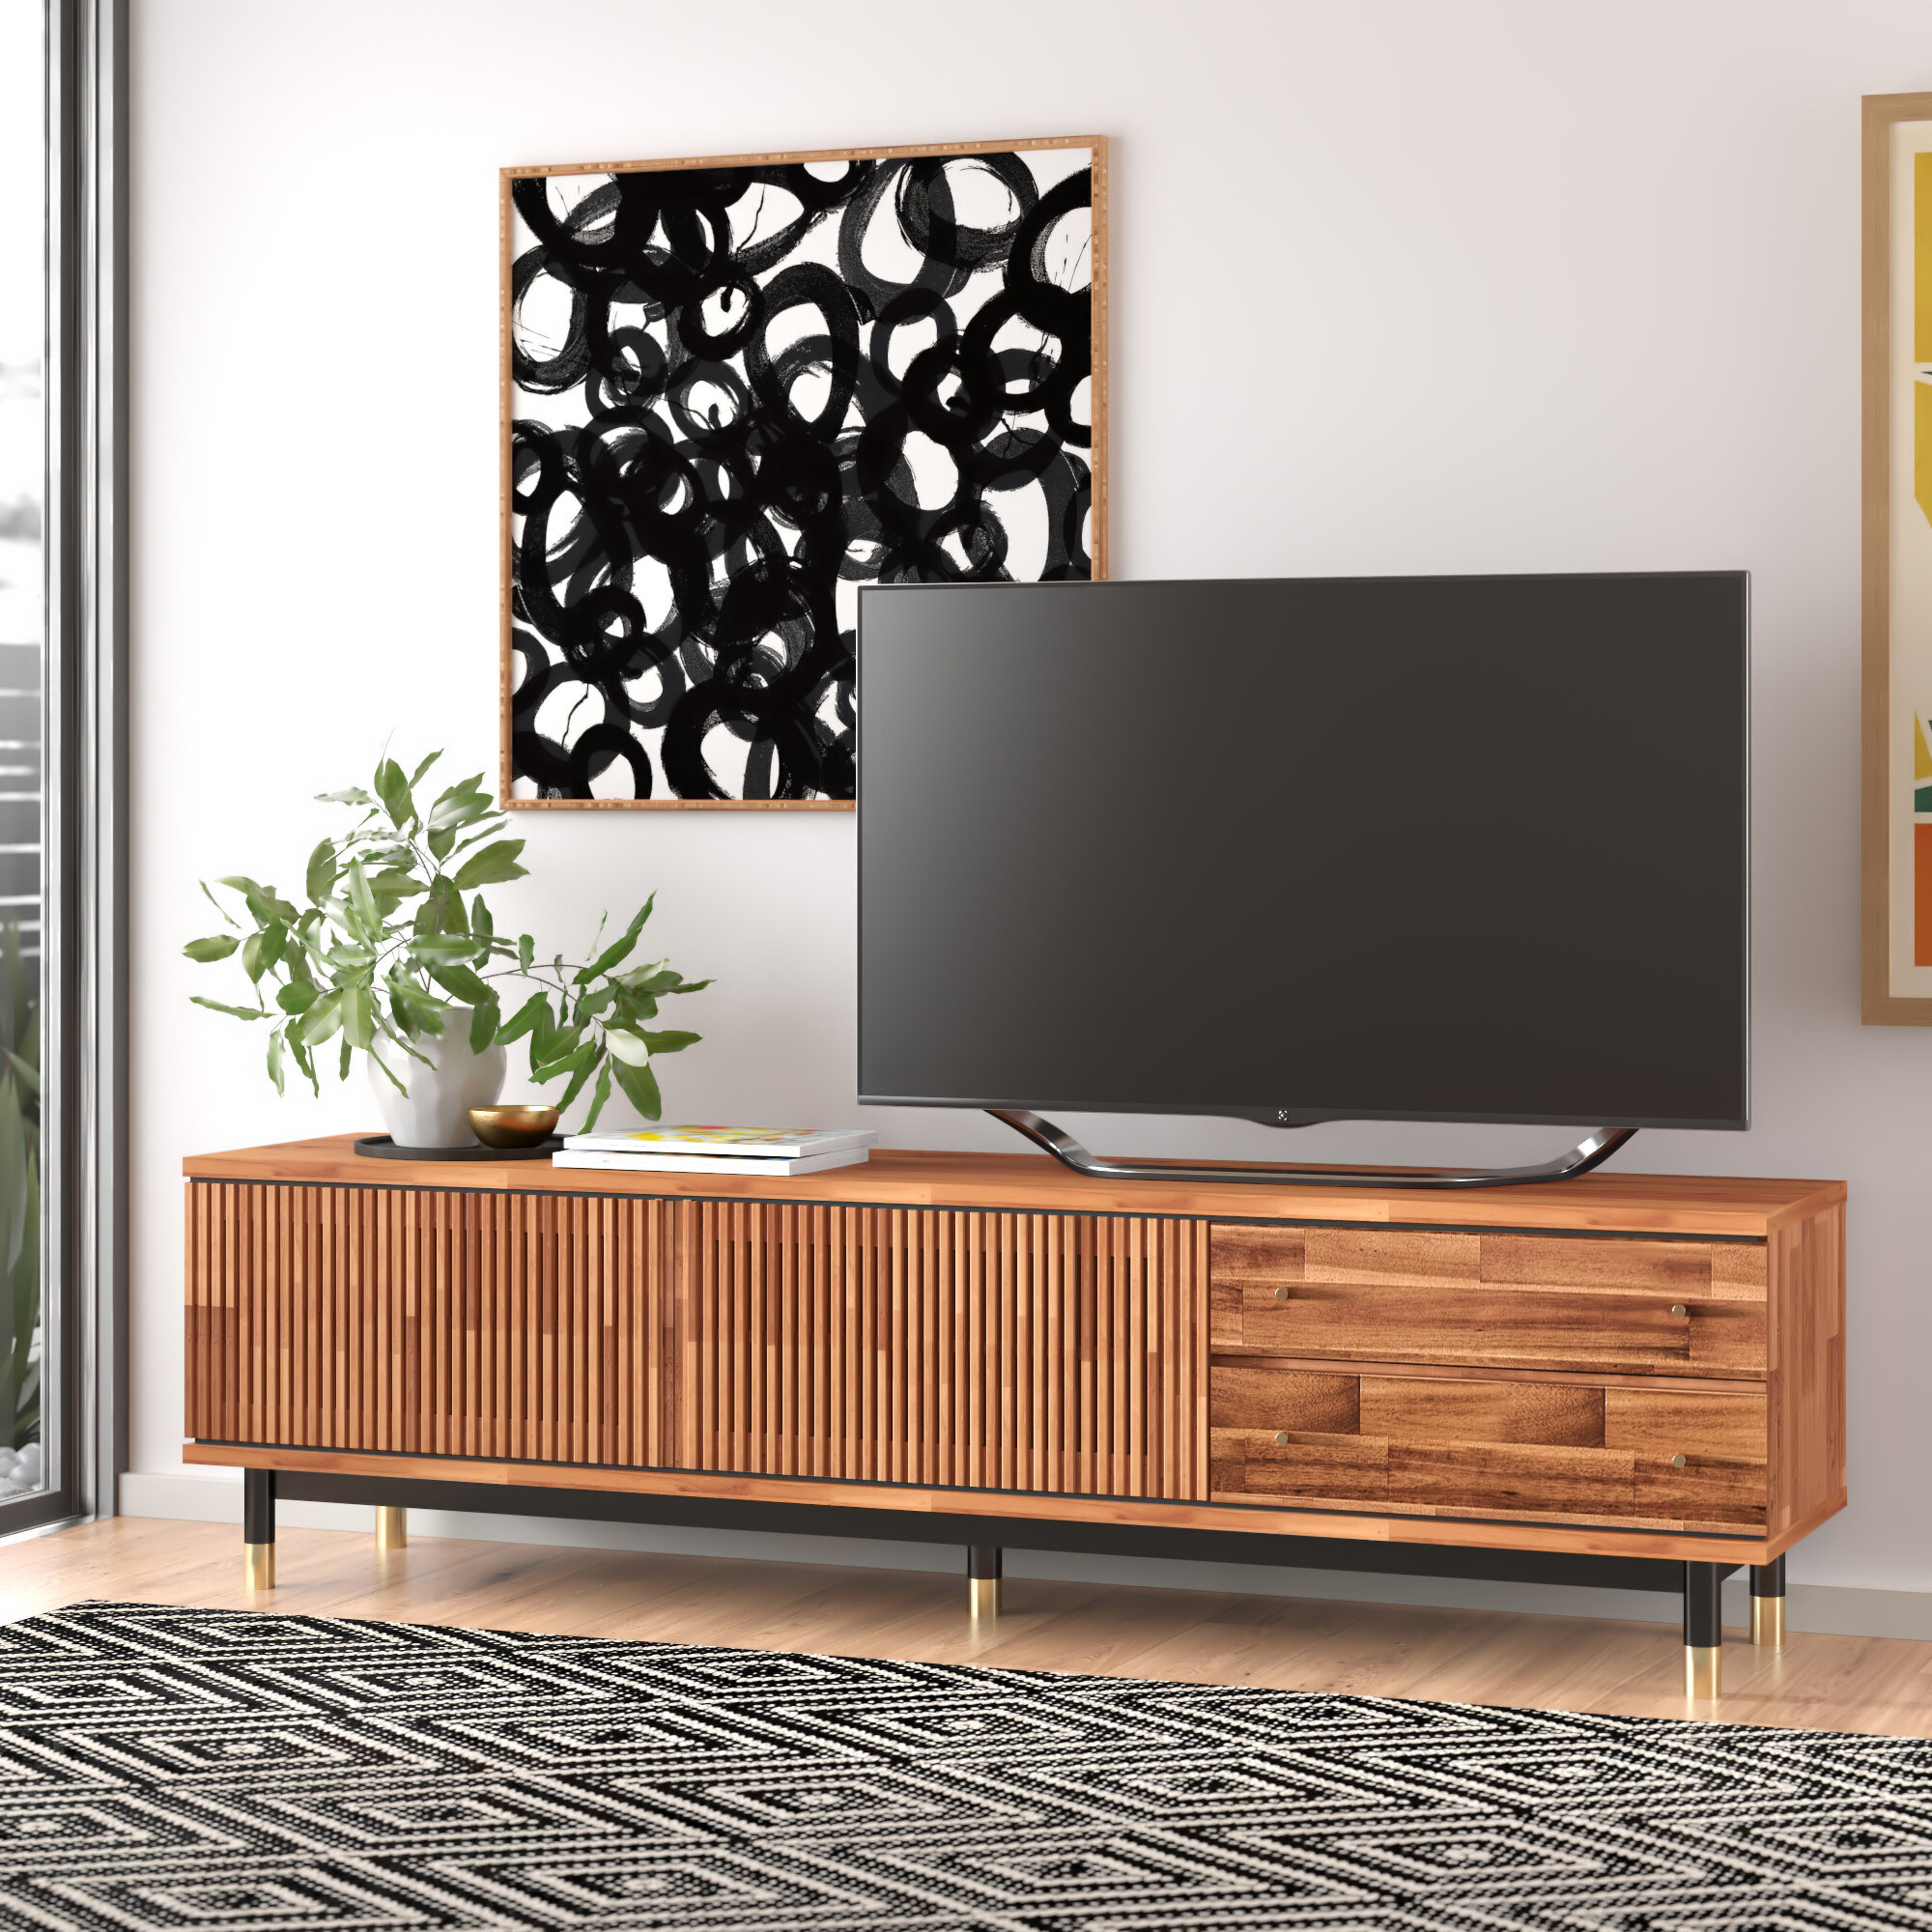 Scotty Solid Wood Tv Stand For Tvs Up To 78 Inches Reviews Allmodern